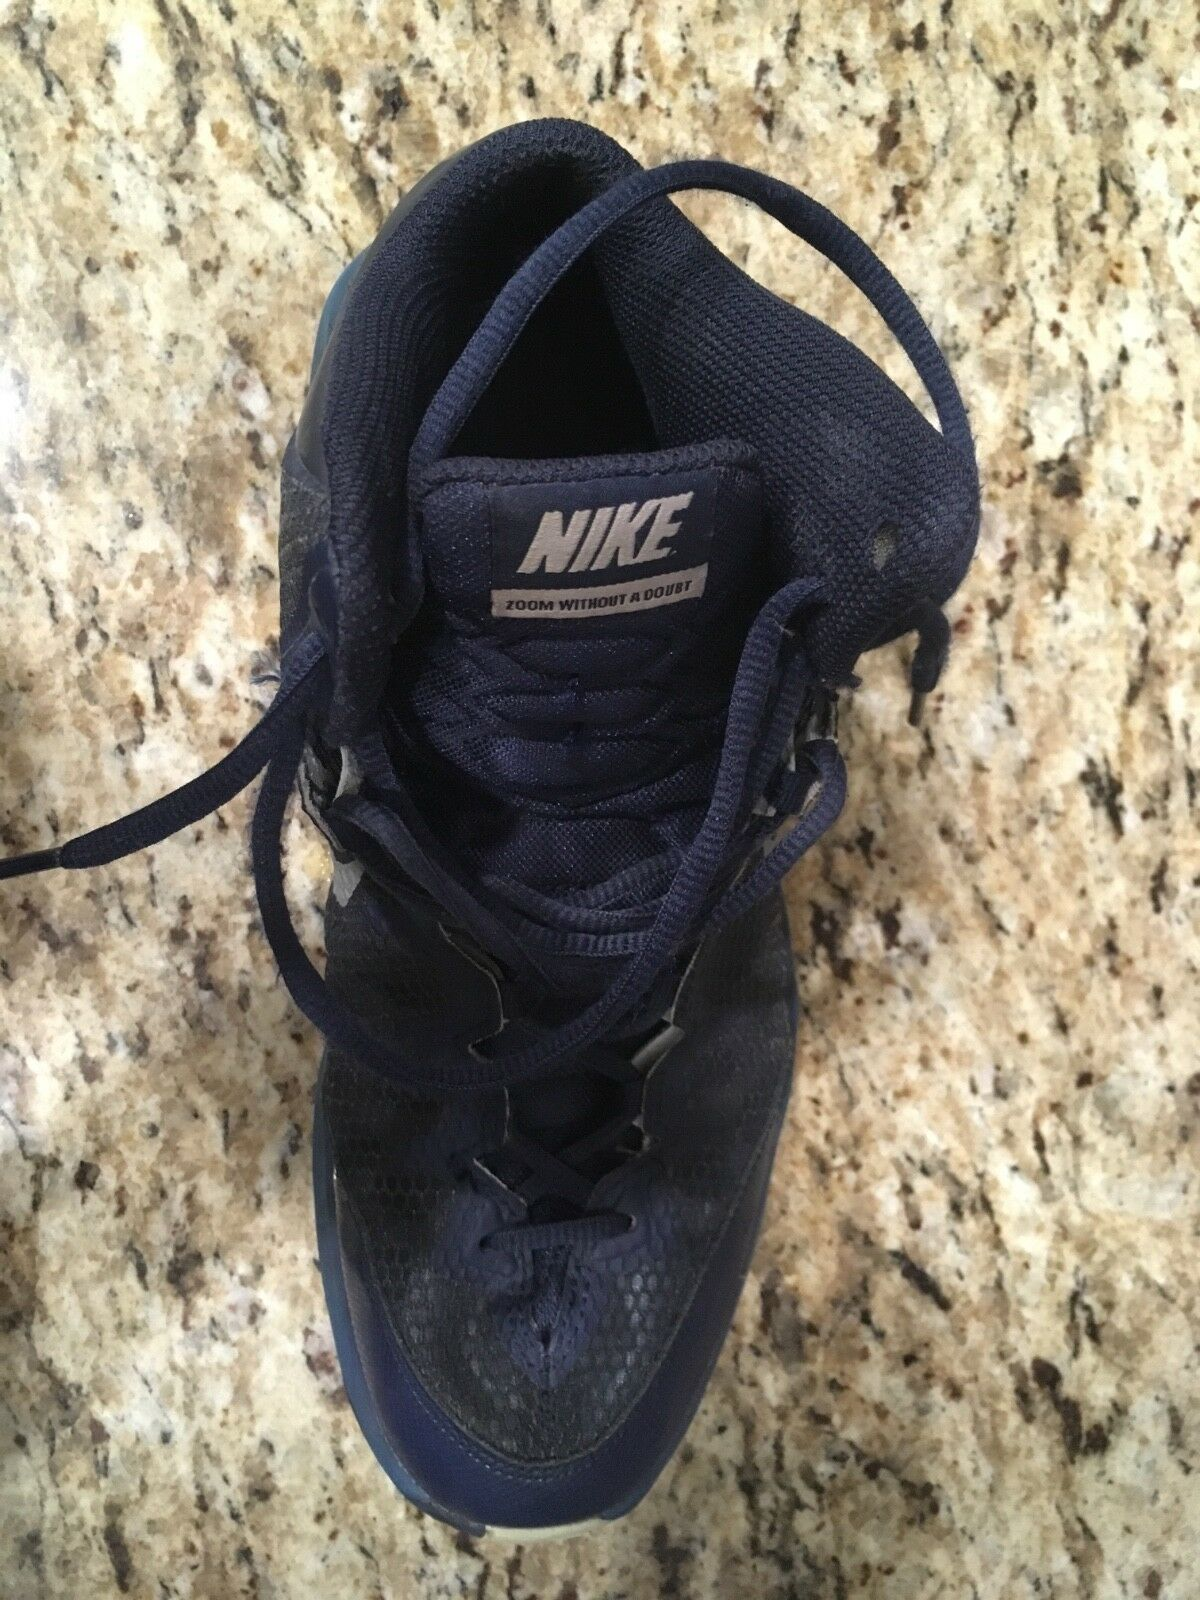 mens navy blue nike basketball shoes nike zoom men's size 8 used